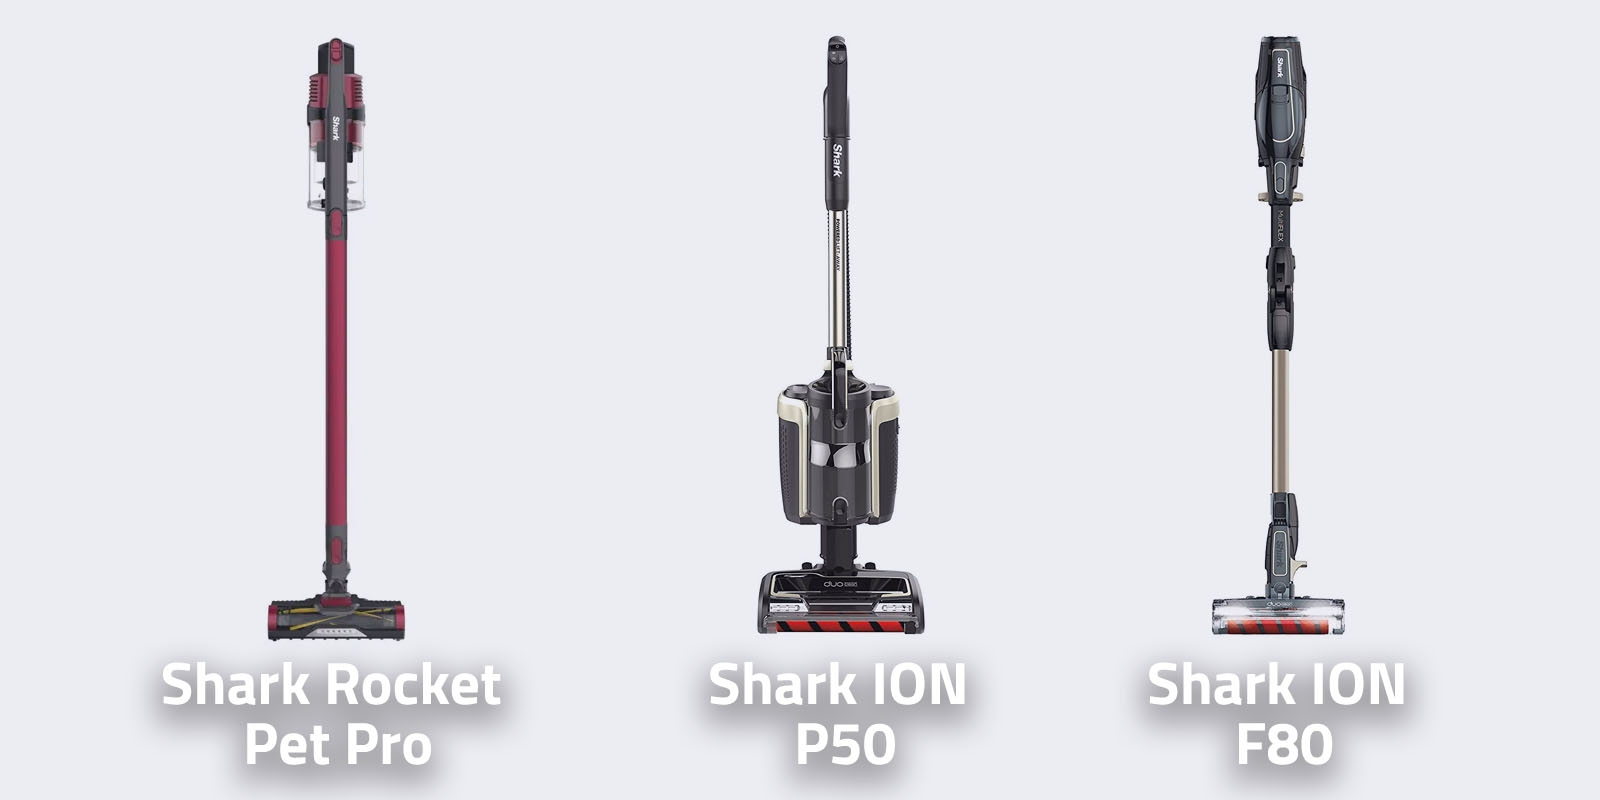 Shark Rocket Pet Pro vs Shark ION P50 vs Shark ION F80 MultiFlex